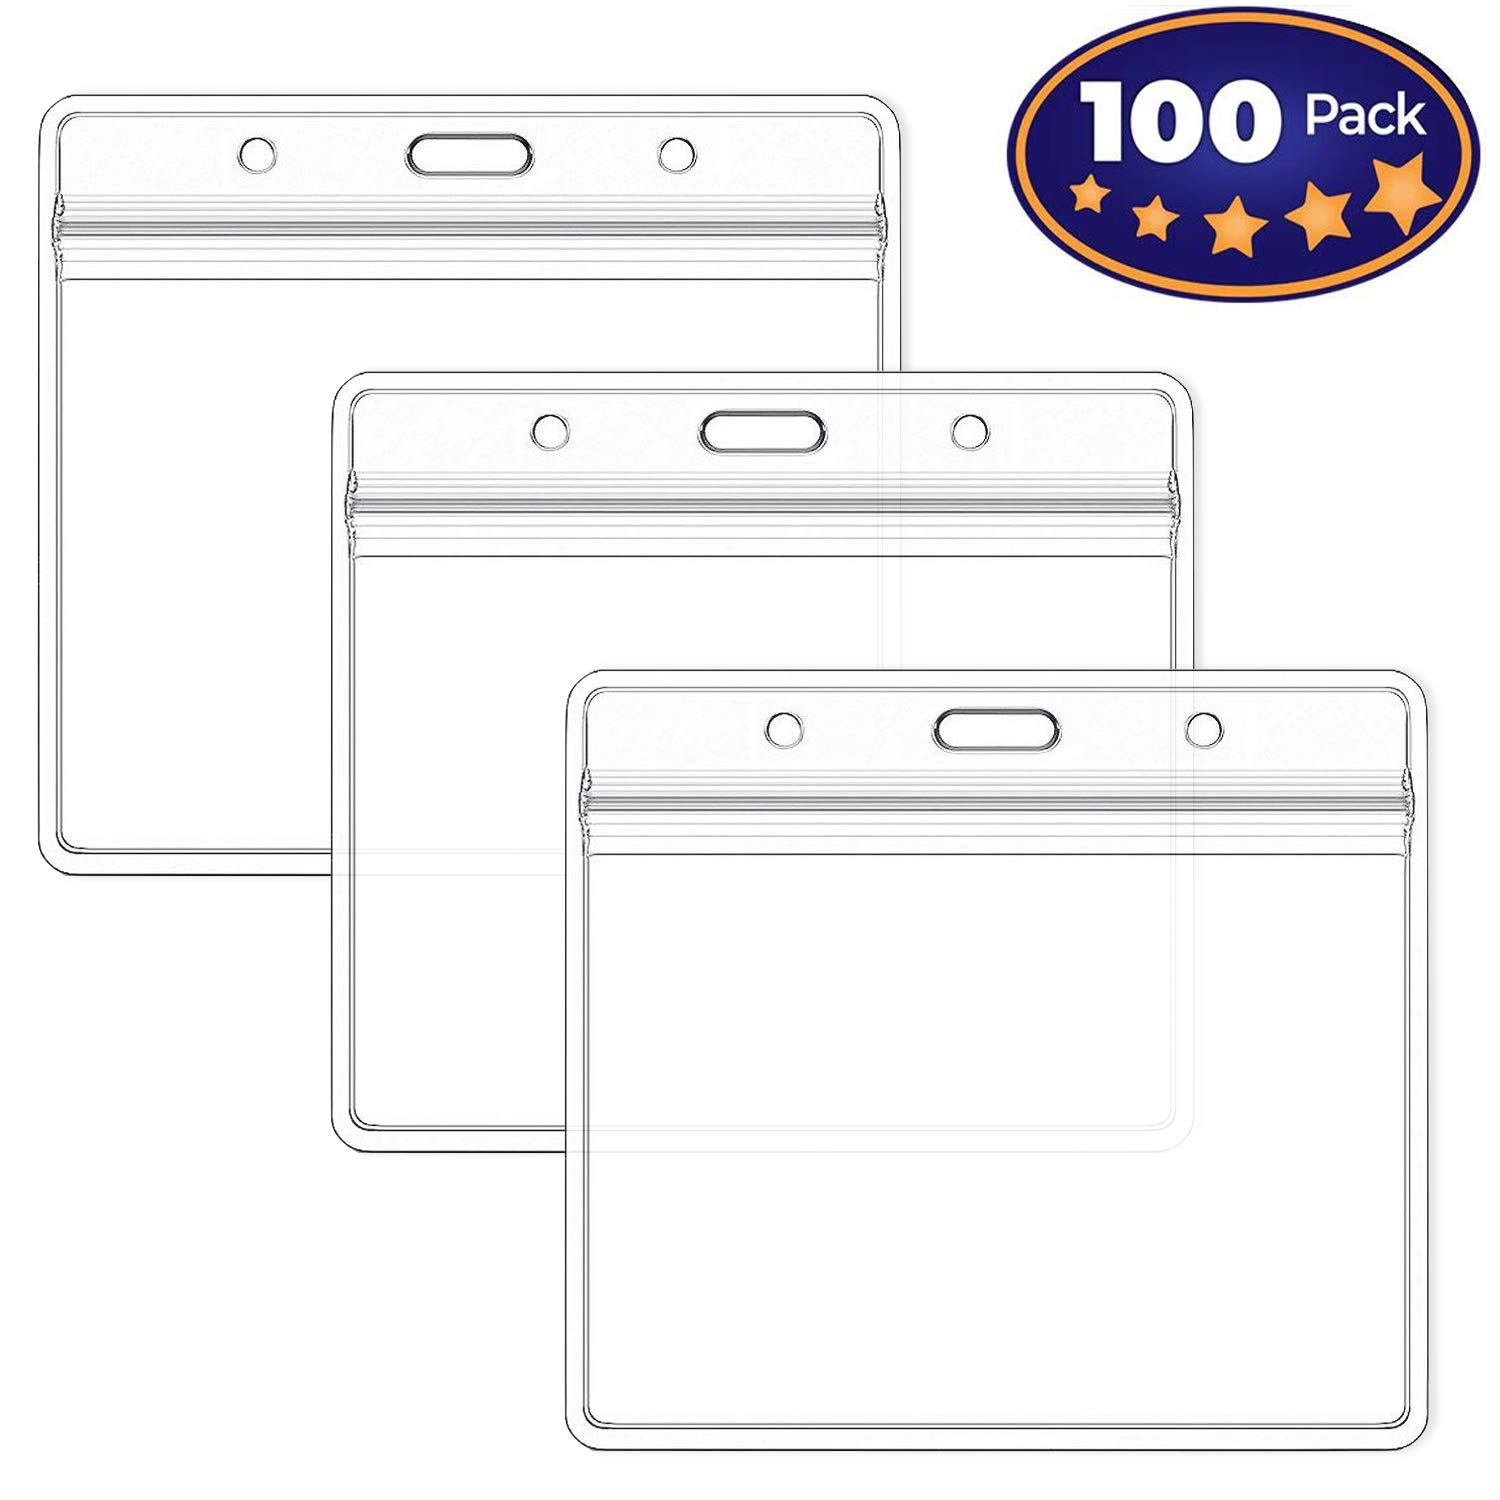 Premium Horizontal ID Name Tag Badge Holder 100 Pack- Clear Plastic Waterproof sealable – Employees Pass, School, Company Events Favors - by IRISING